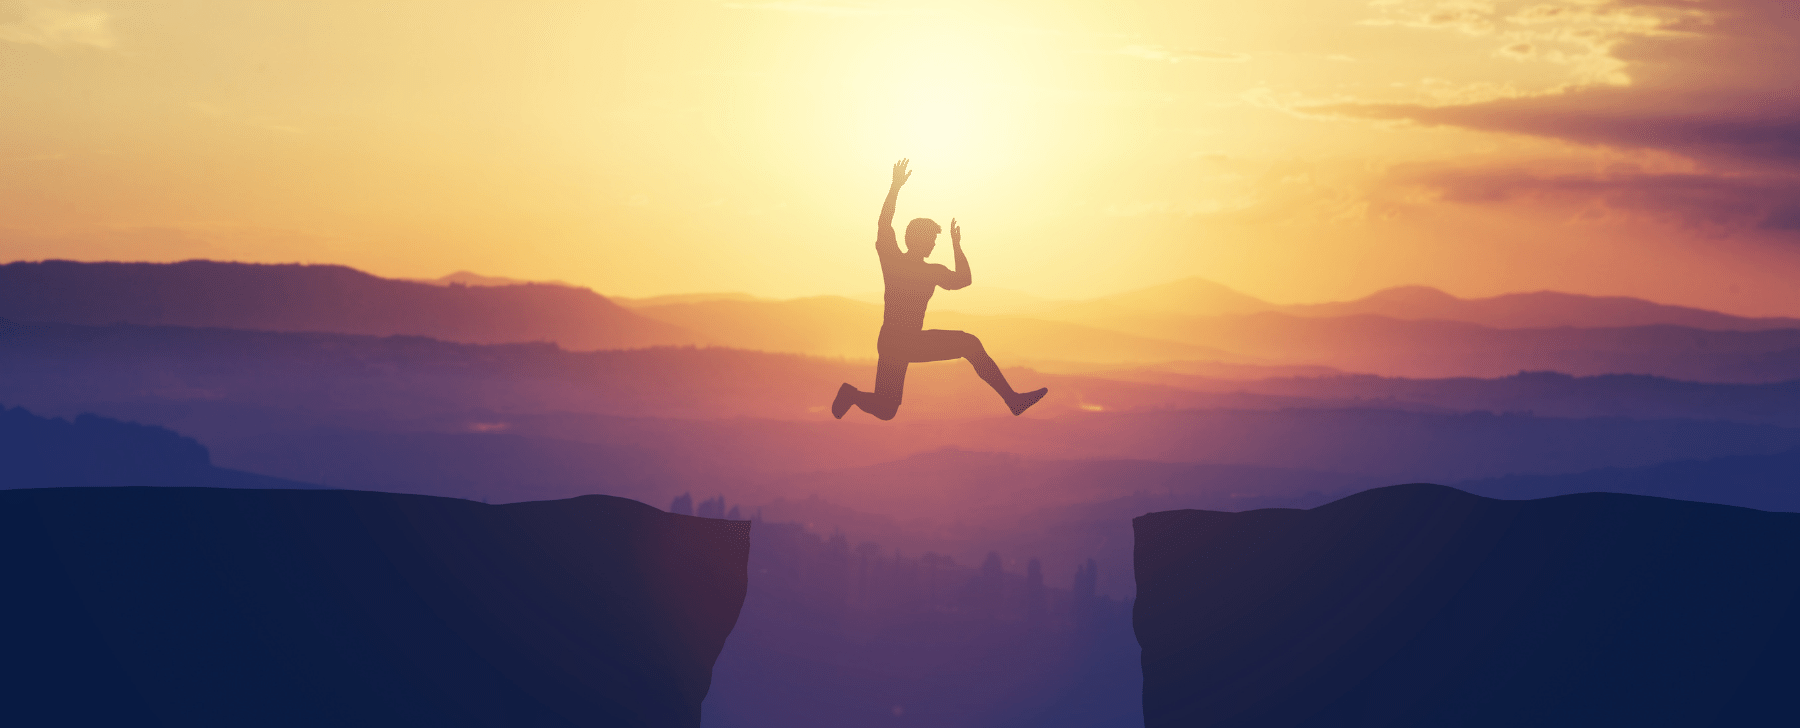 person jumping between two mountains at sunset risk taker